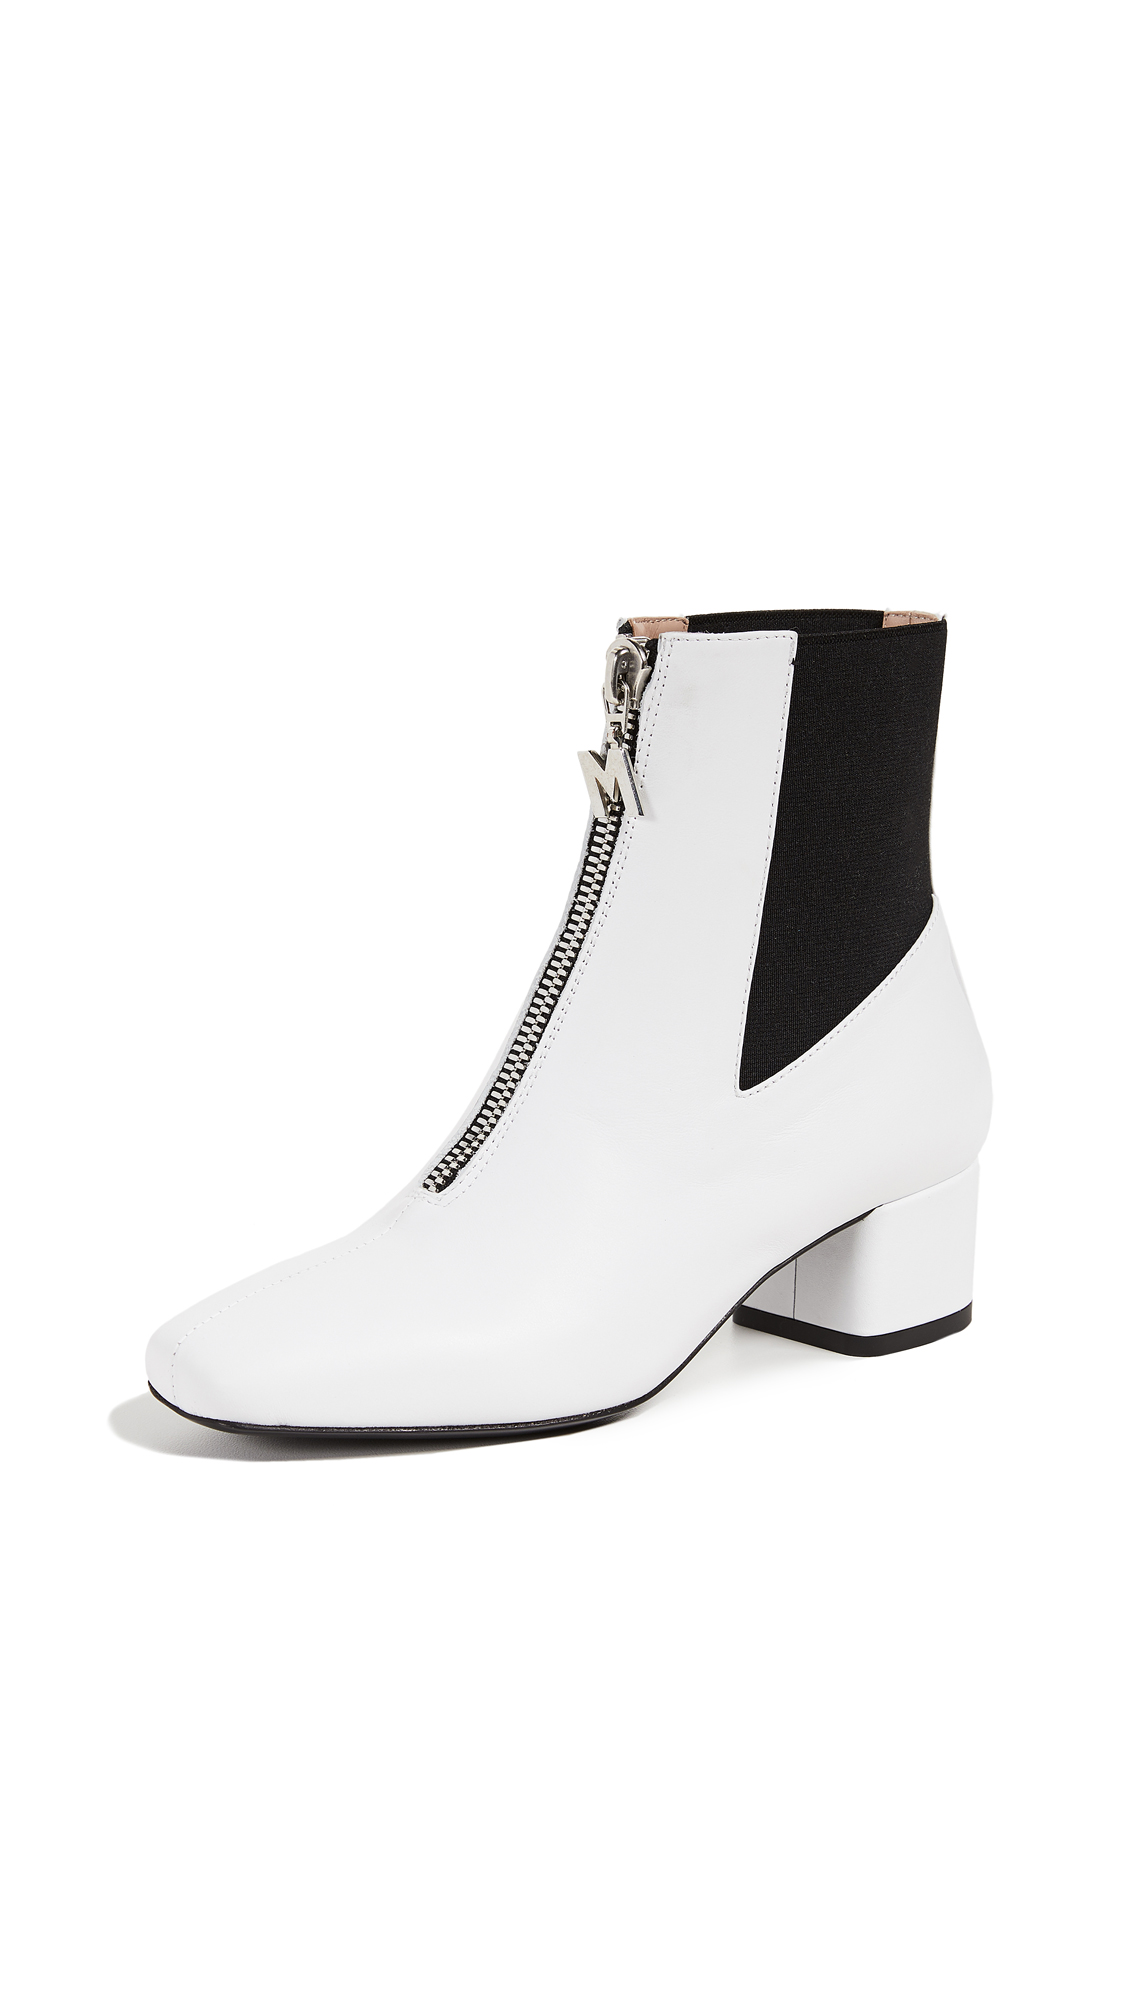 MSGM Zip Chelsea Booties - White/Black